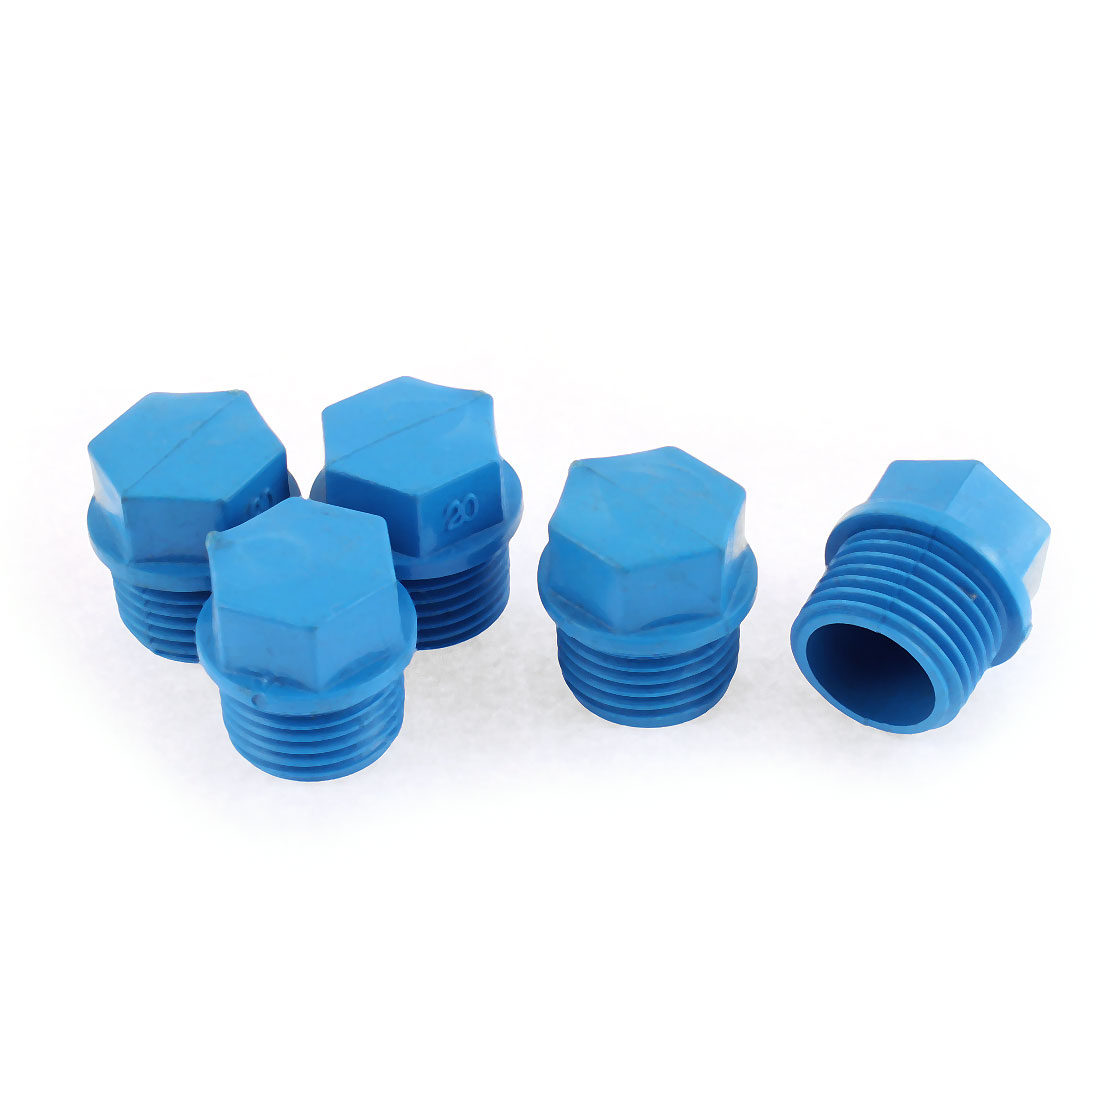 21mm Hex Head Dia 20mm Male Thread Water Pipe Connector Plug 5PCS